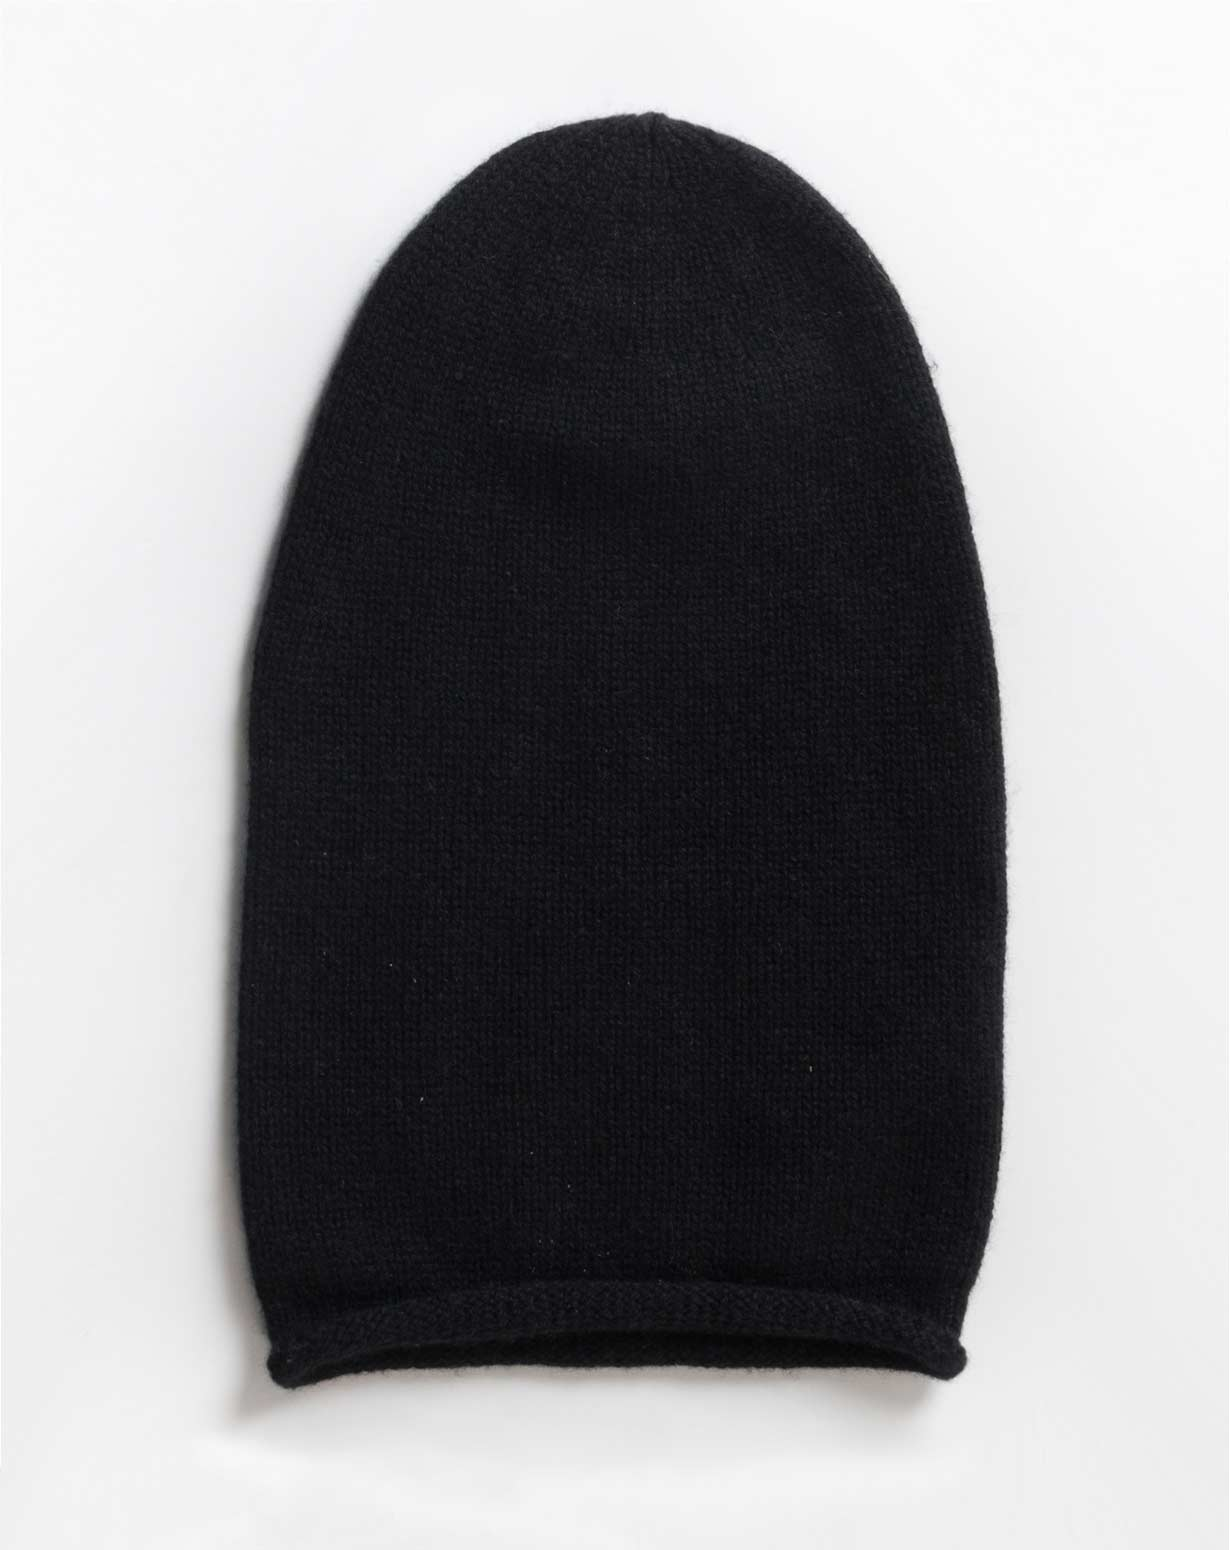 ab22cd5b0f0 Ladies pure cashmere slouch beanie maisoncashmere jpg 1230x1550 Slouchy  black beanie